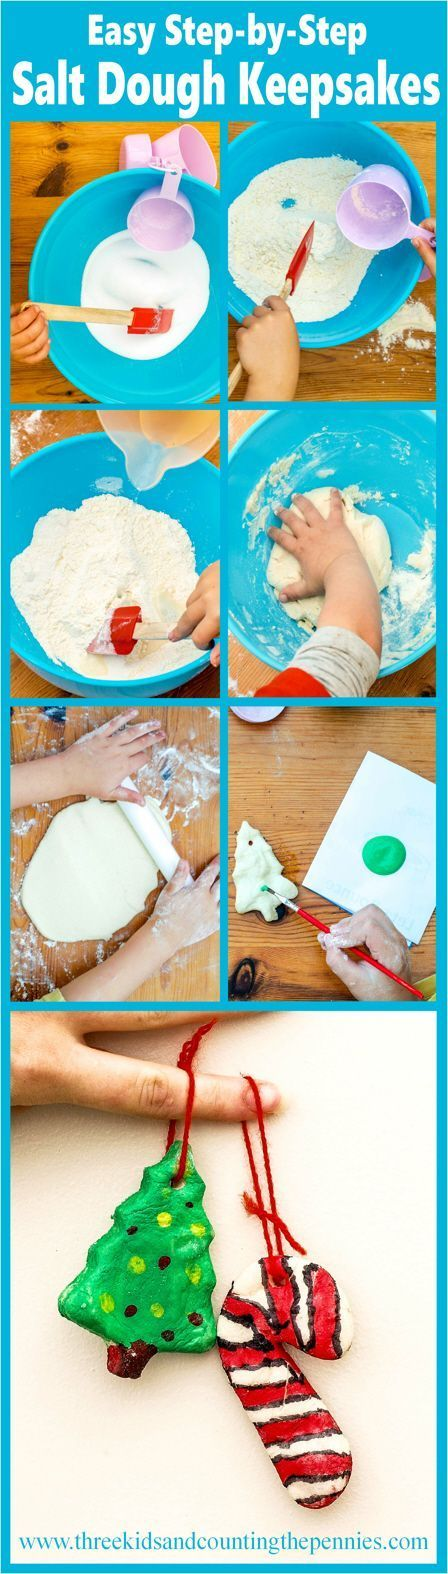 The kids loved getting messing making these Easy Step-by-Step Salt Dough Keepsakes. They've created lasting Christmas Tree decorations and a few scary Halloween trinkets, too. All you need is 1 cup of salt, 2 cups of all-purpose flour (plain), and 1 cup of water.